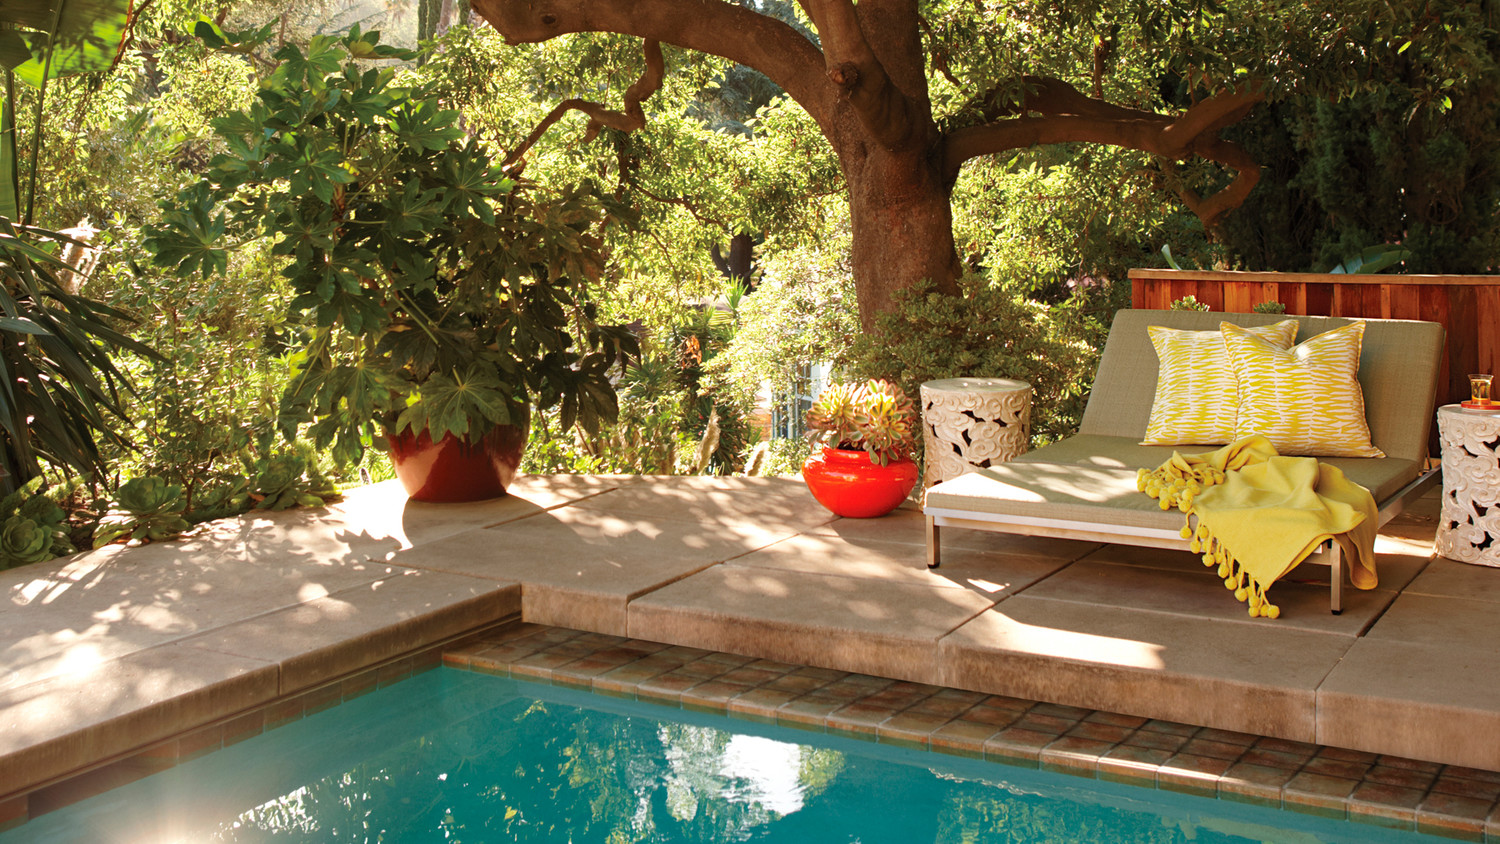 pool safety checklist martha stewart - Outdoor House Pools